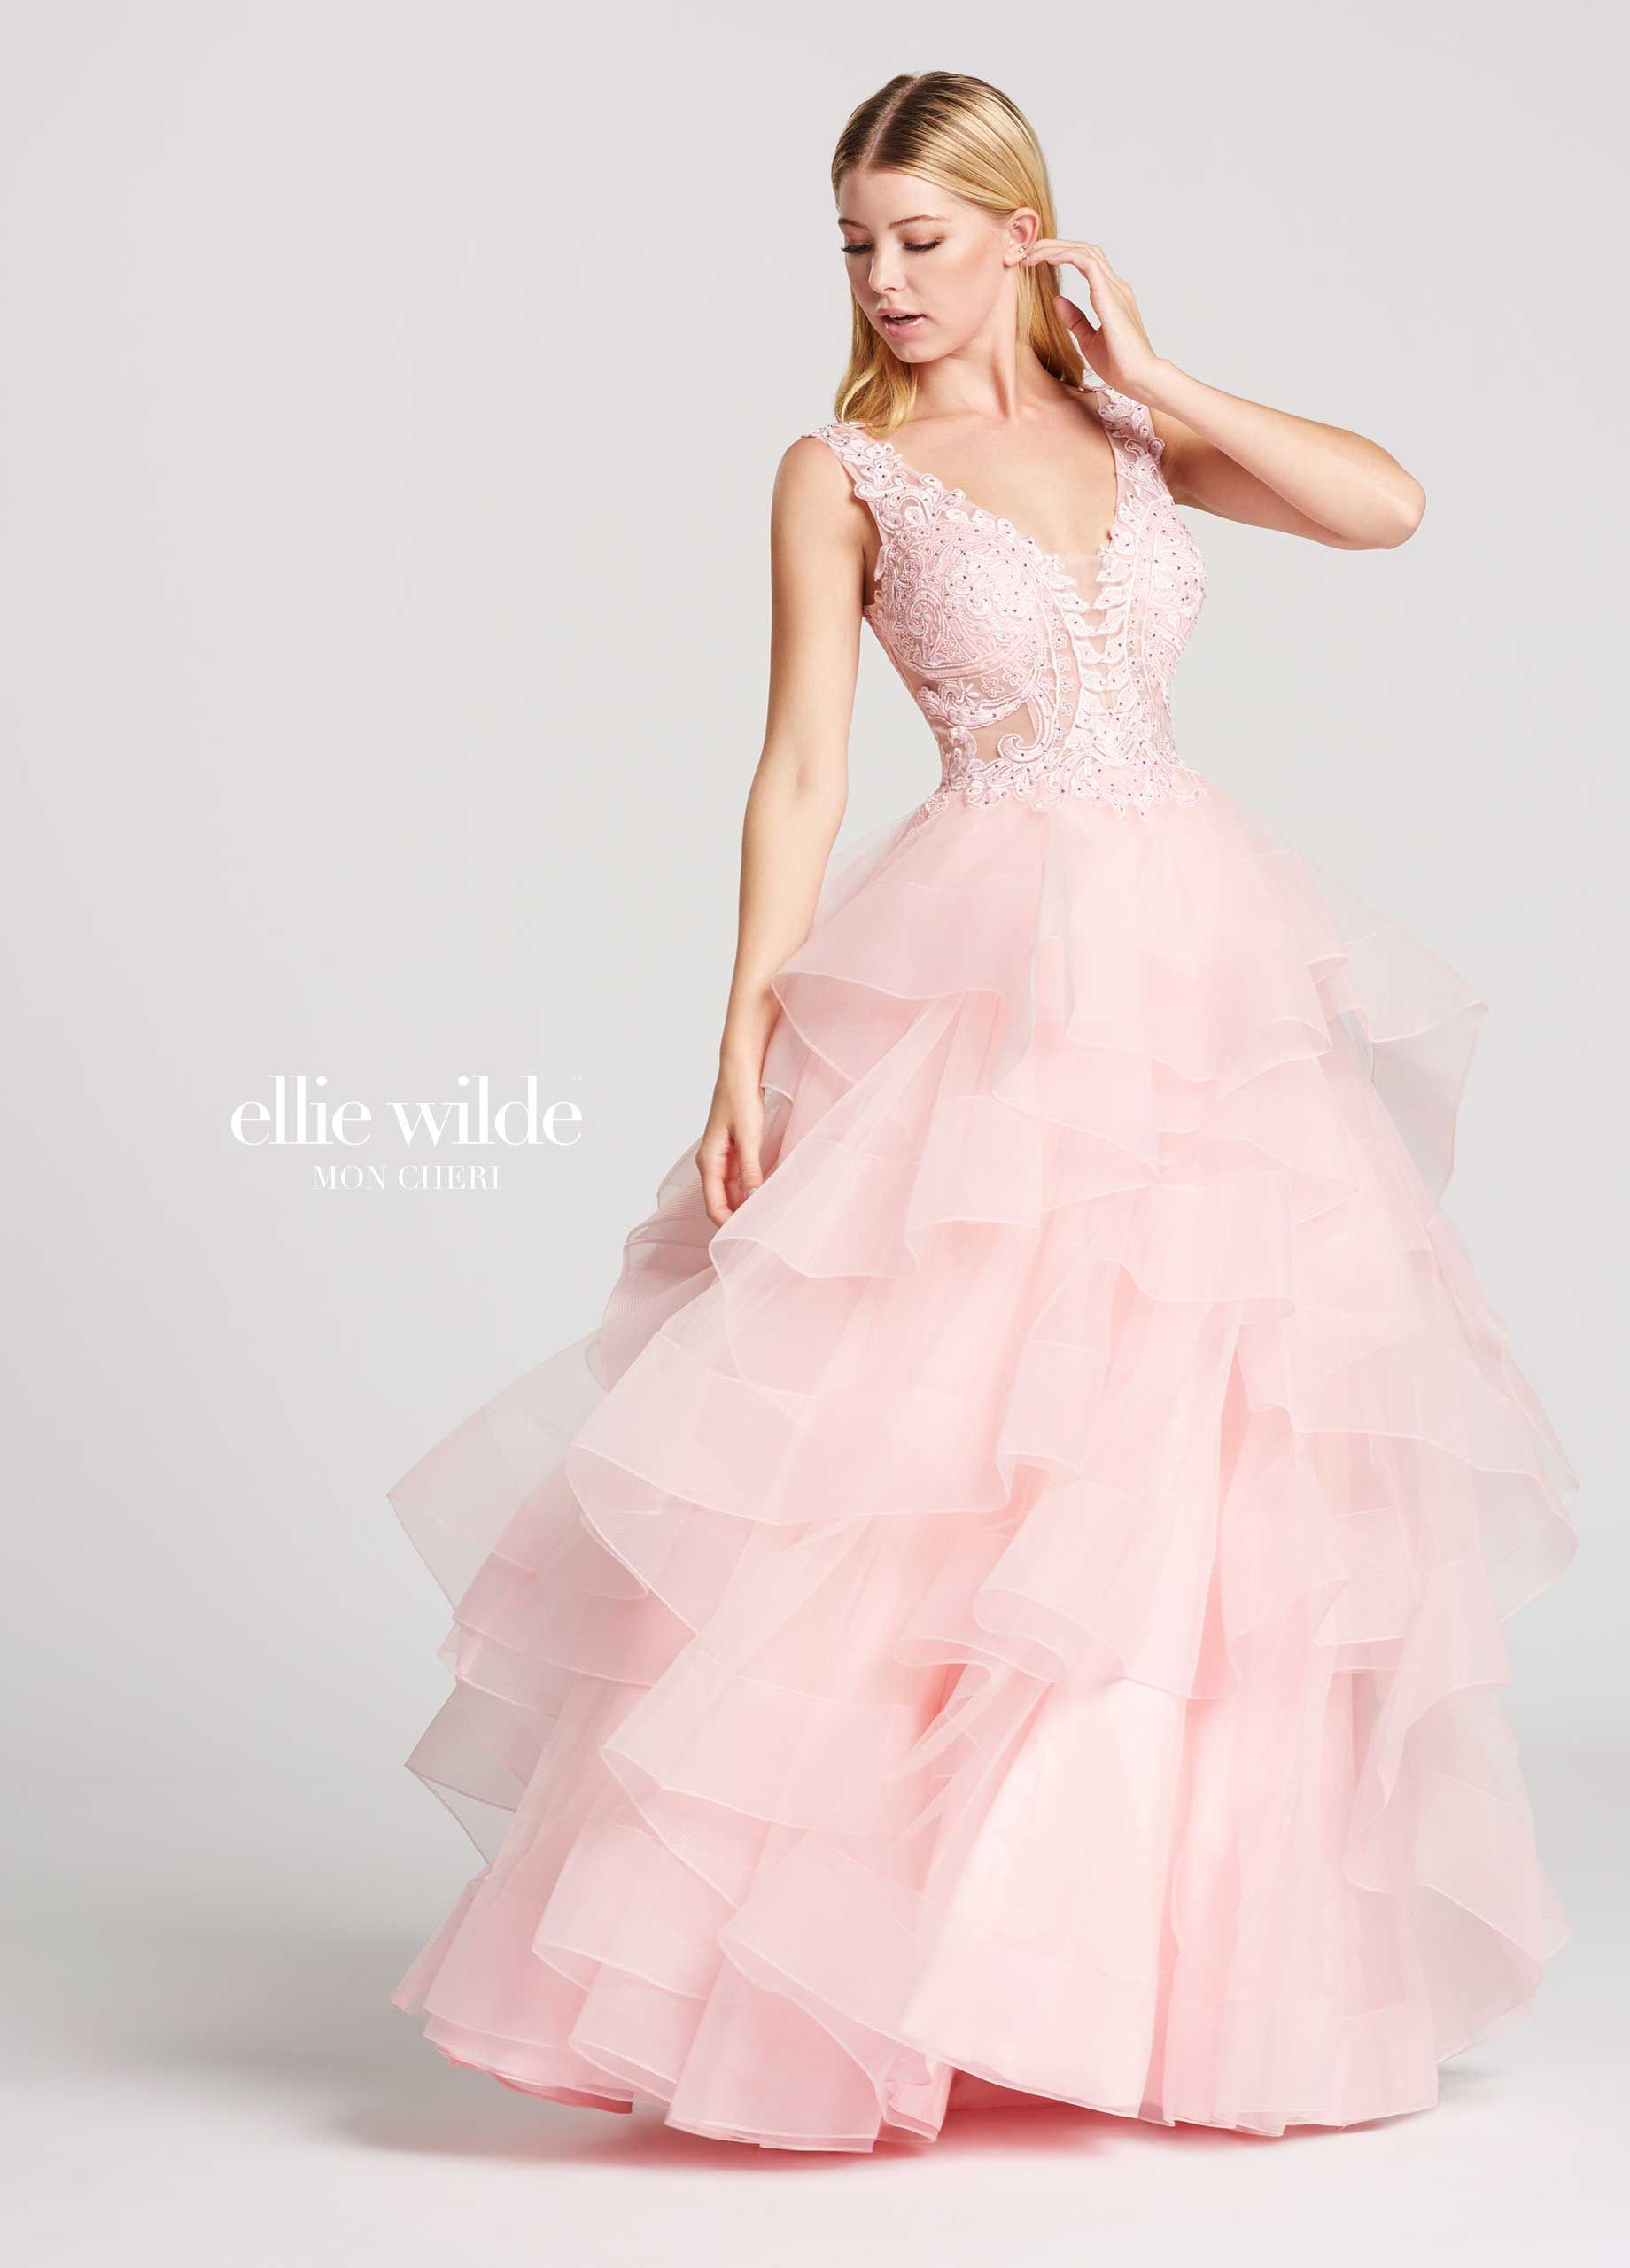 f974451adb6 Ellie Wilde EW117081 - Sleeveless tulle ball gown with lace and heat-set  stone bodice